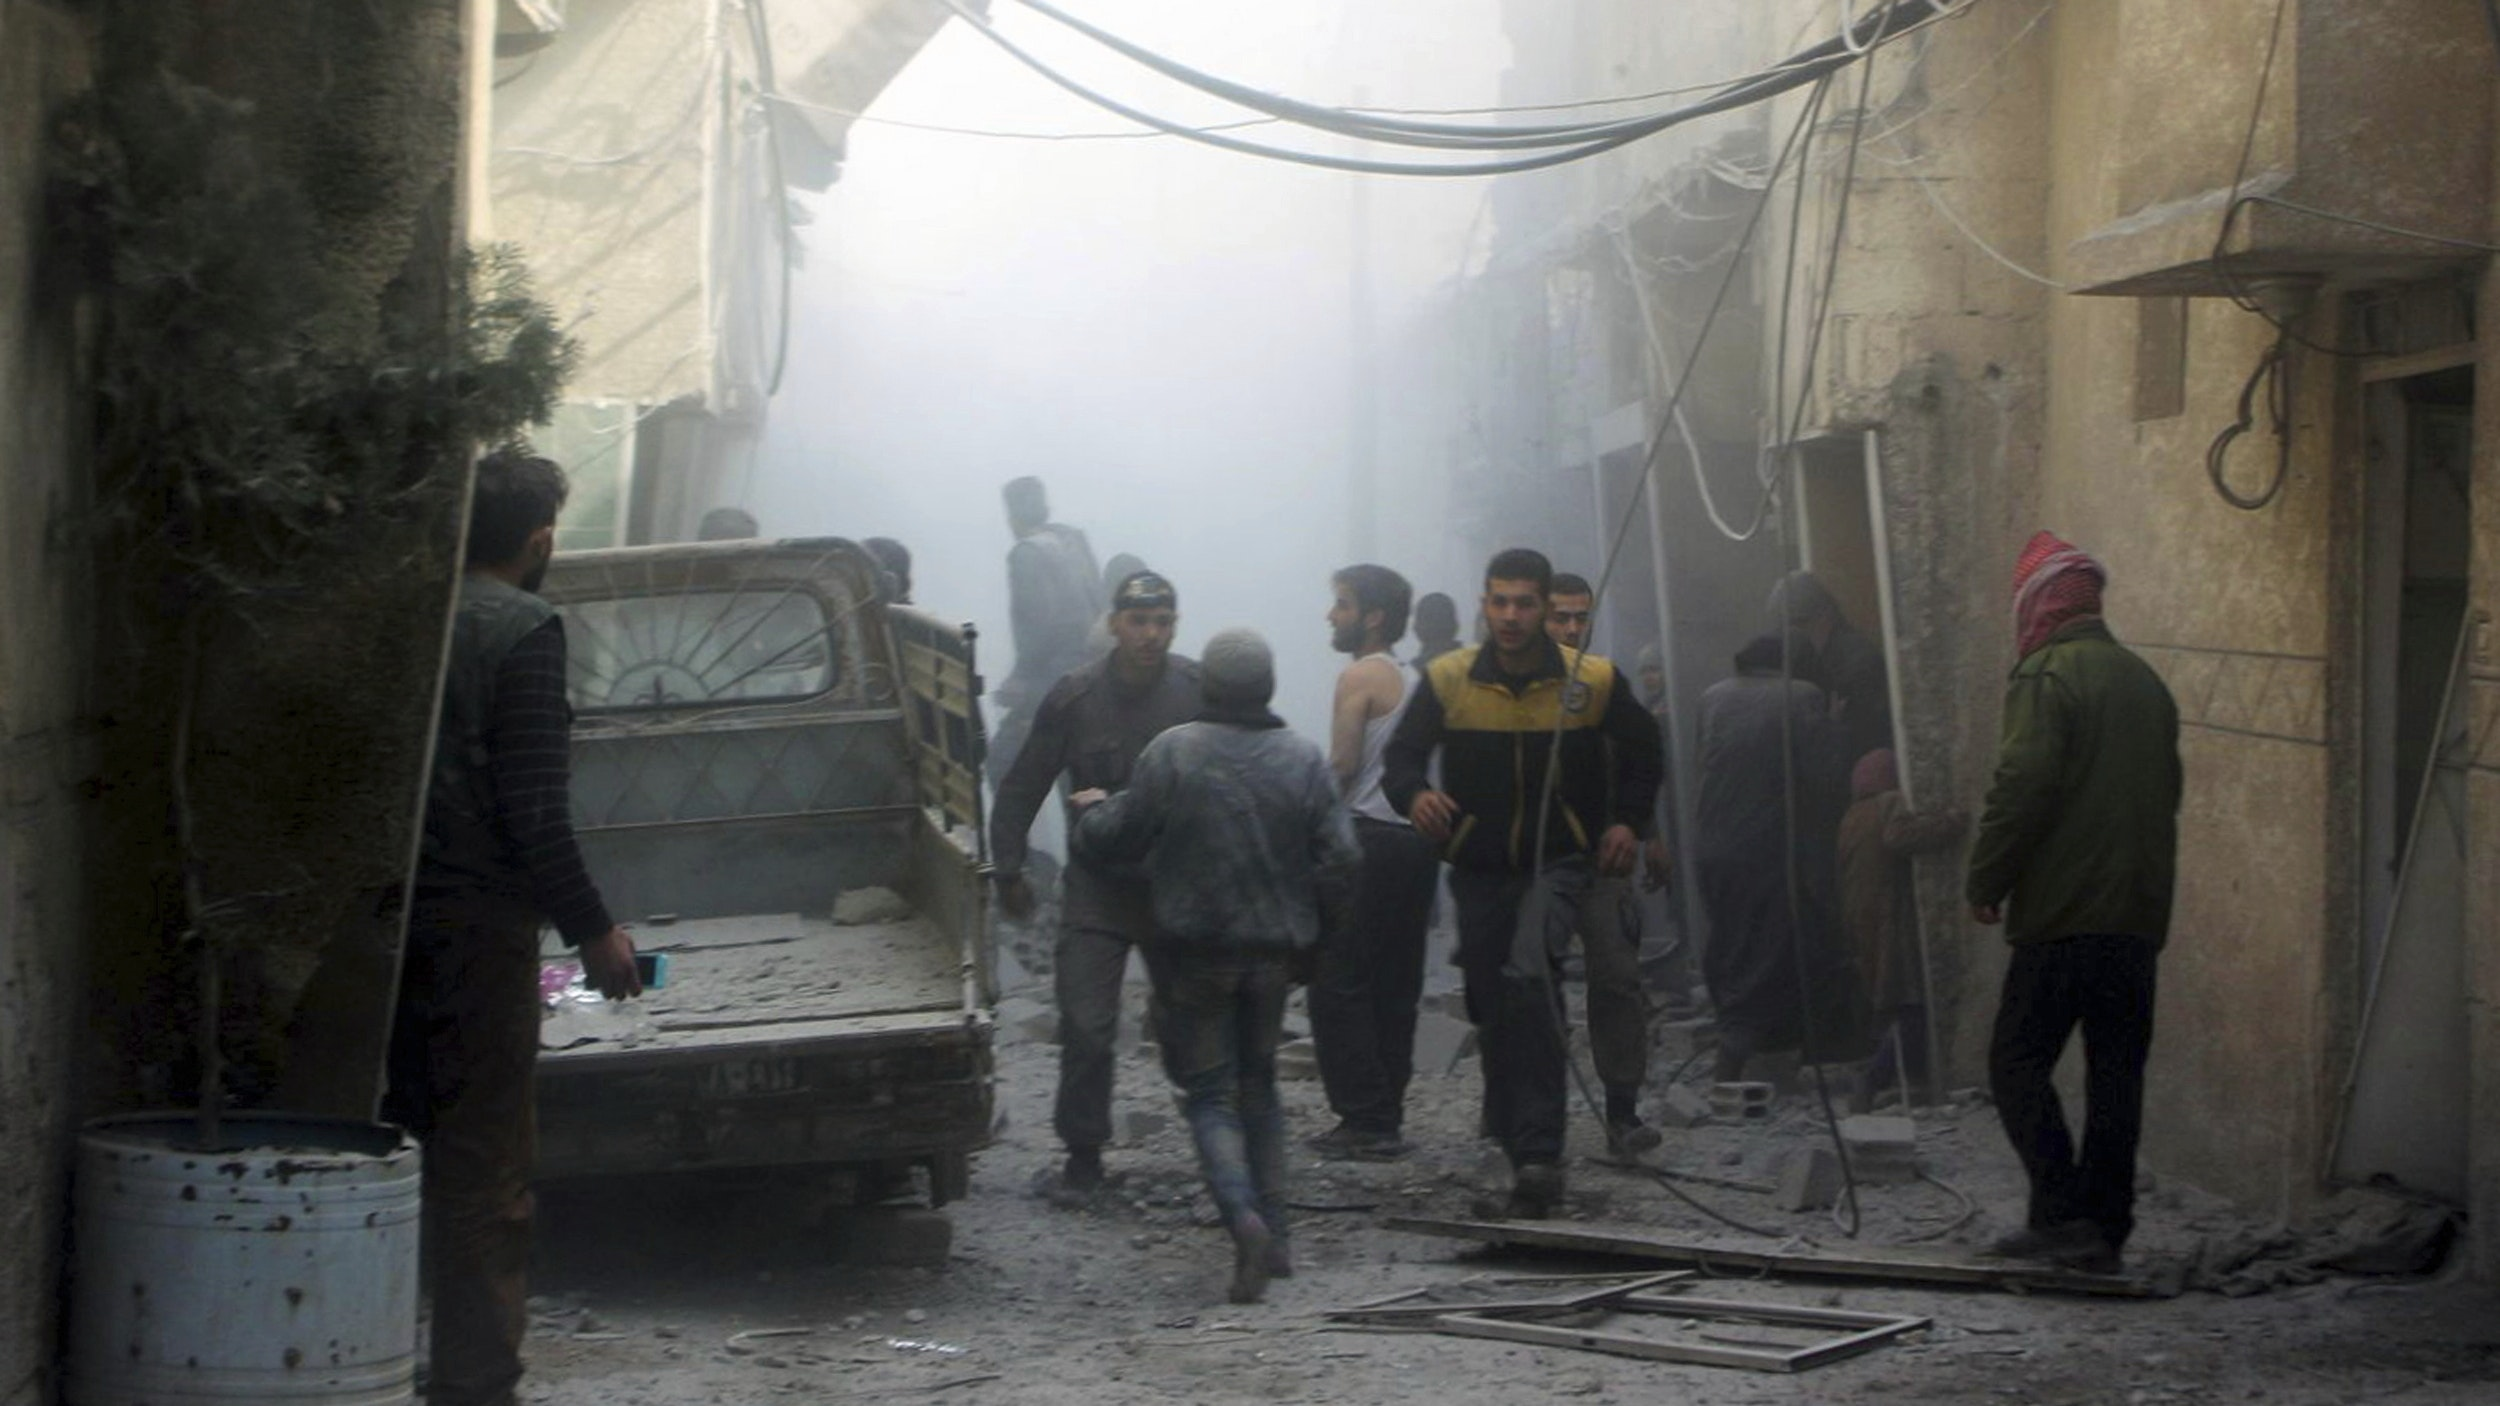 Syrian airstrikes pound Ghouta despite United Nations ceasefire resolution